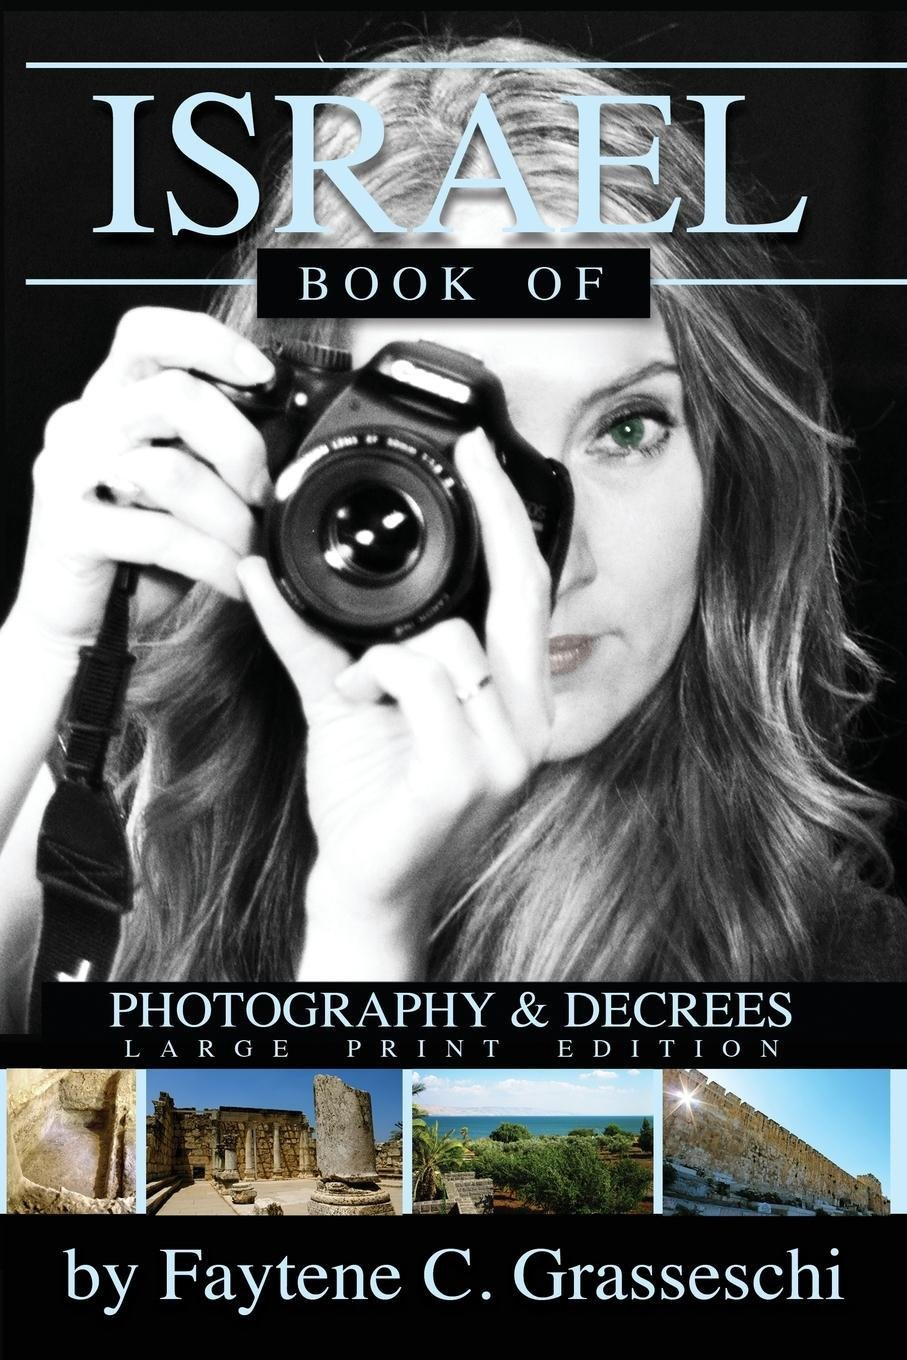 Israel / Book of Decrees and Photography (Book) 00000